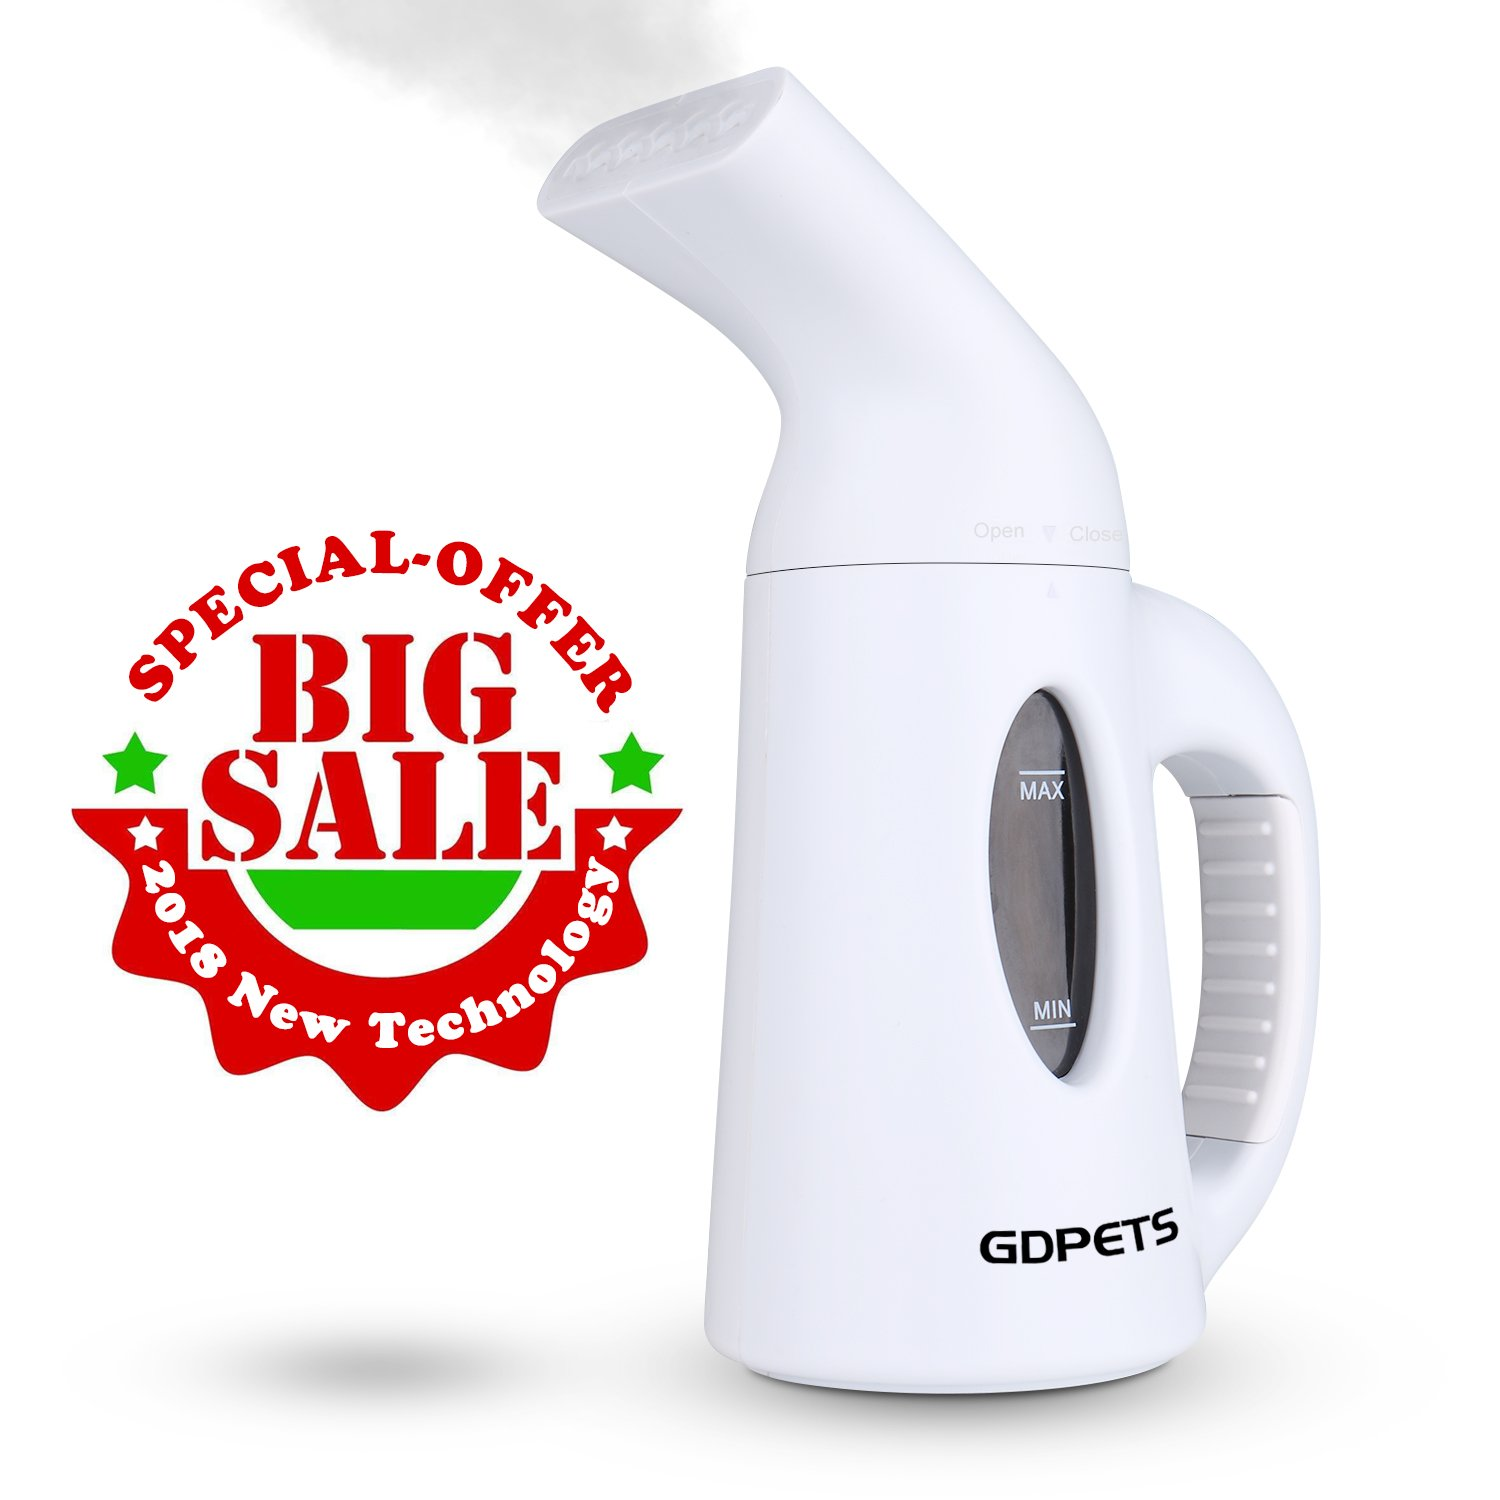 GDPETS Steamer For Clothes, Clothes Steamer, Mini 120ML Portable Handheld Garment Steamer,Fast Heat-Up Little Clothes Steamer&Steamers for Clothes and Other Fabric- Travel Steamer for Home &Travel